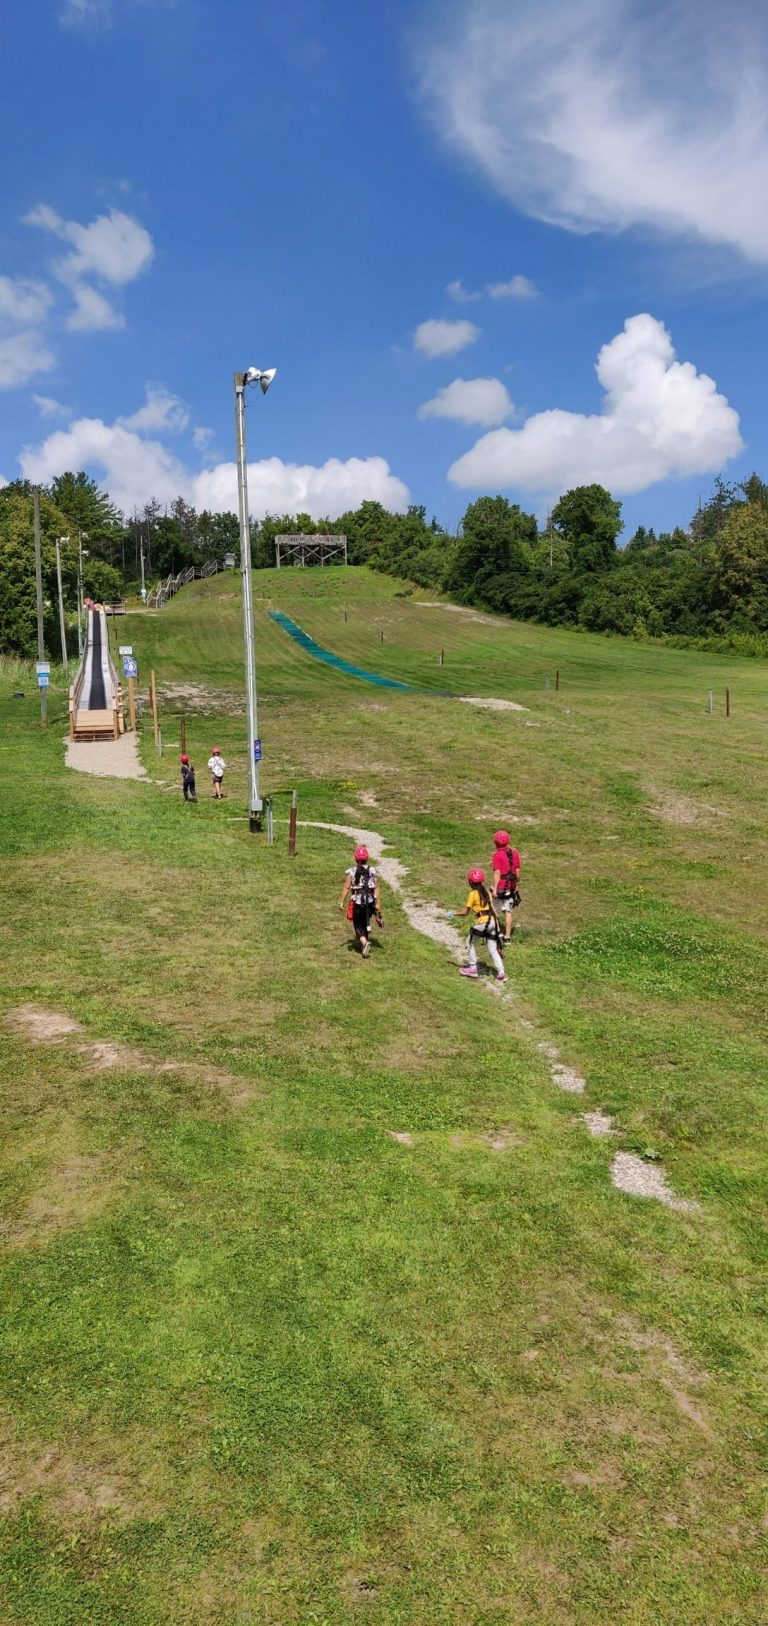 chicopee tube hill and zip lining course